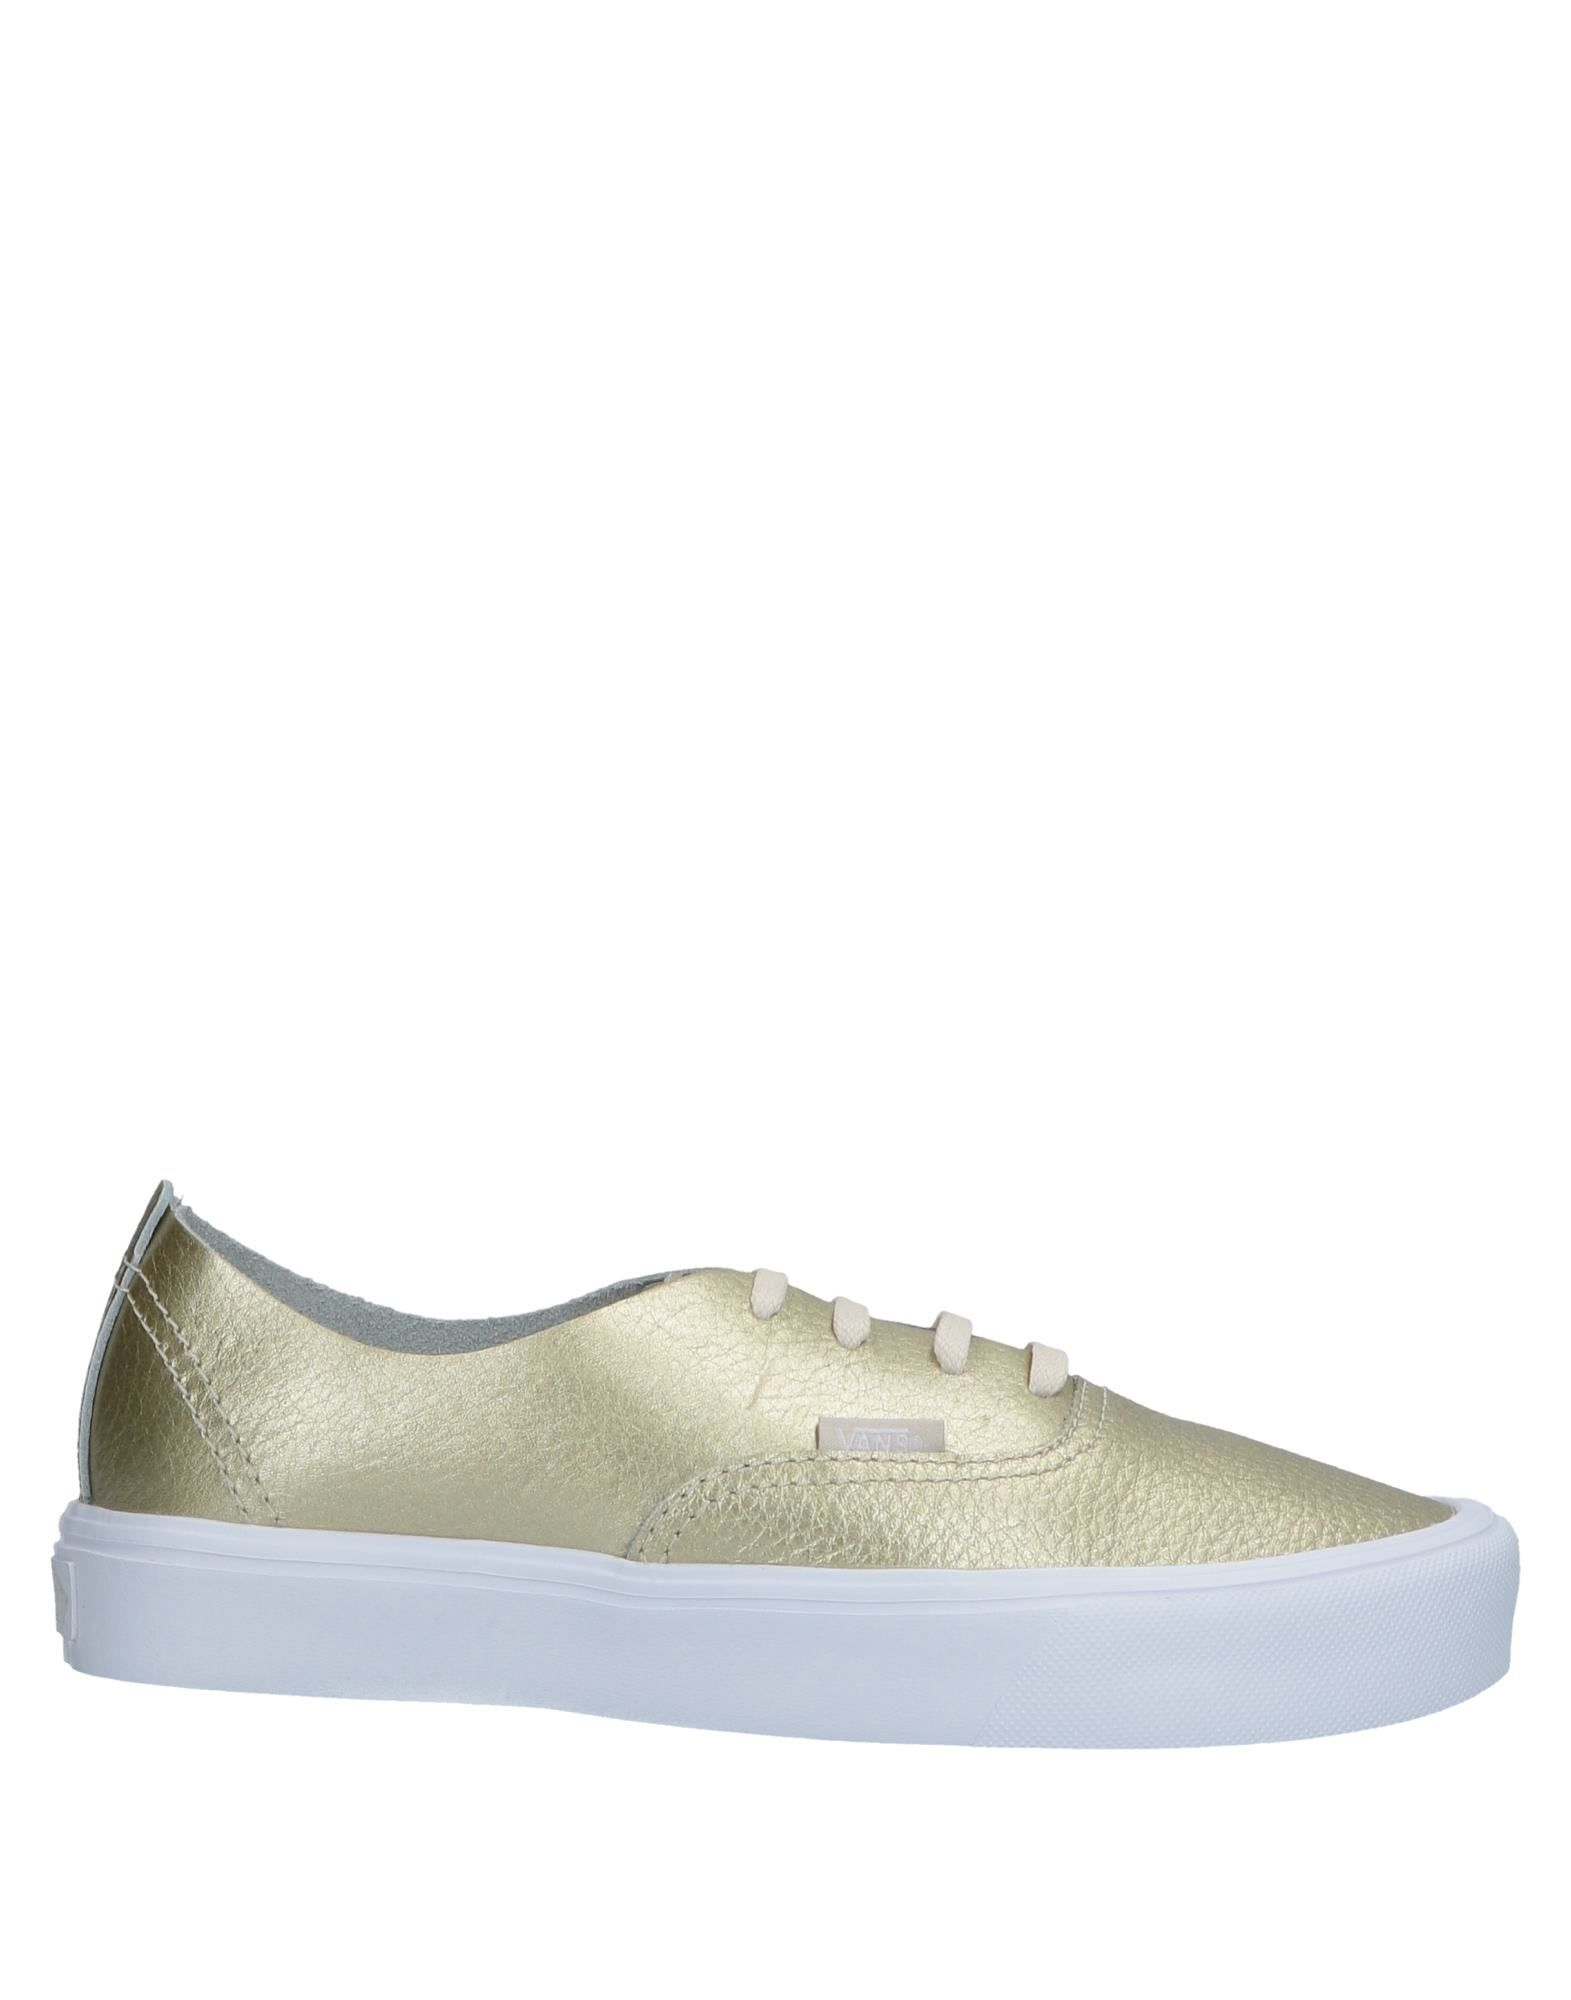 Vans on Sneakers - Women Vans Sneakers online on Vans  Canada - 11573564UV b55105